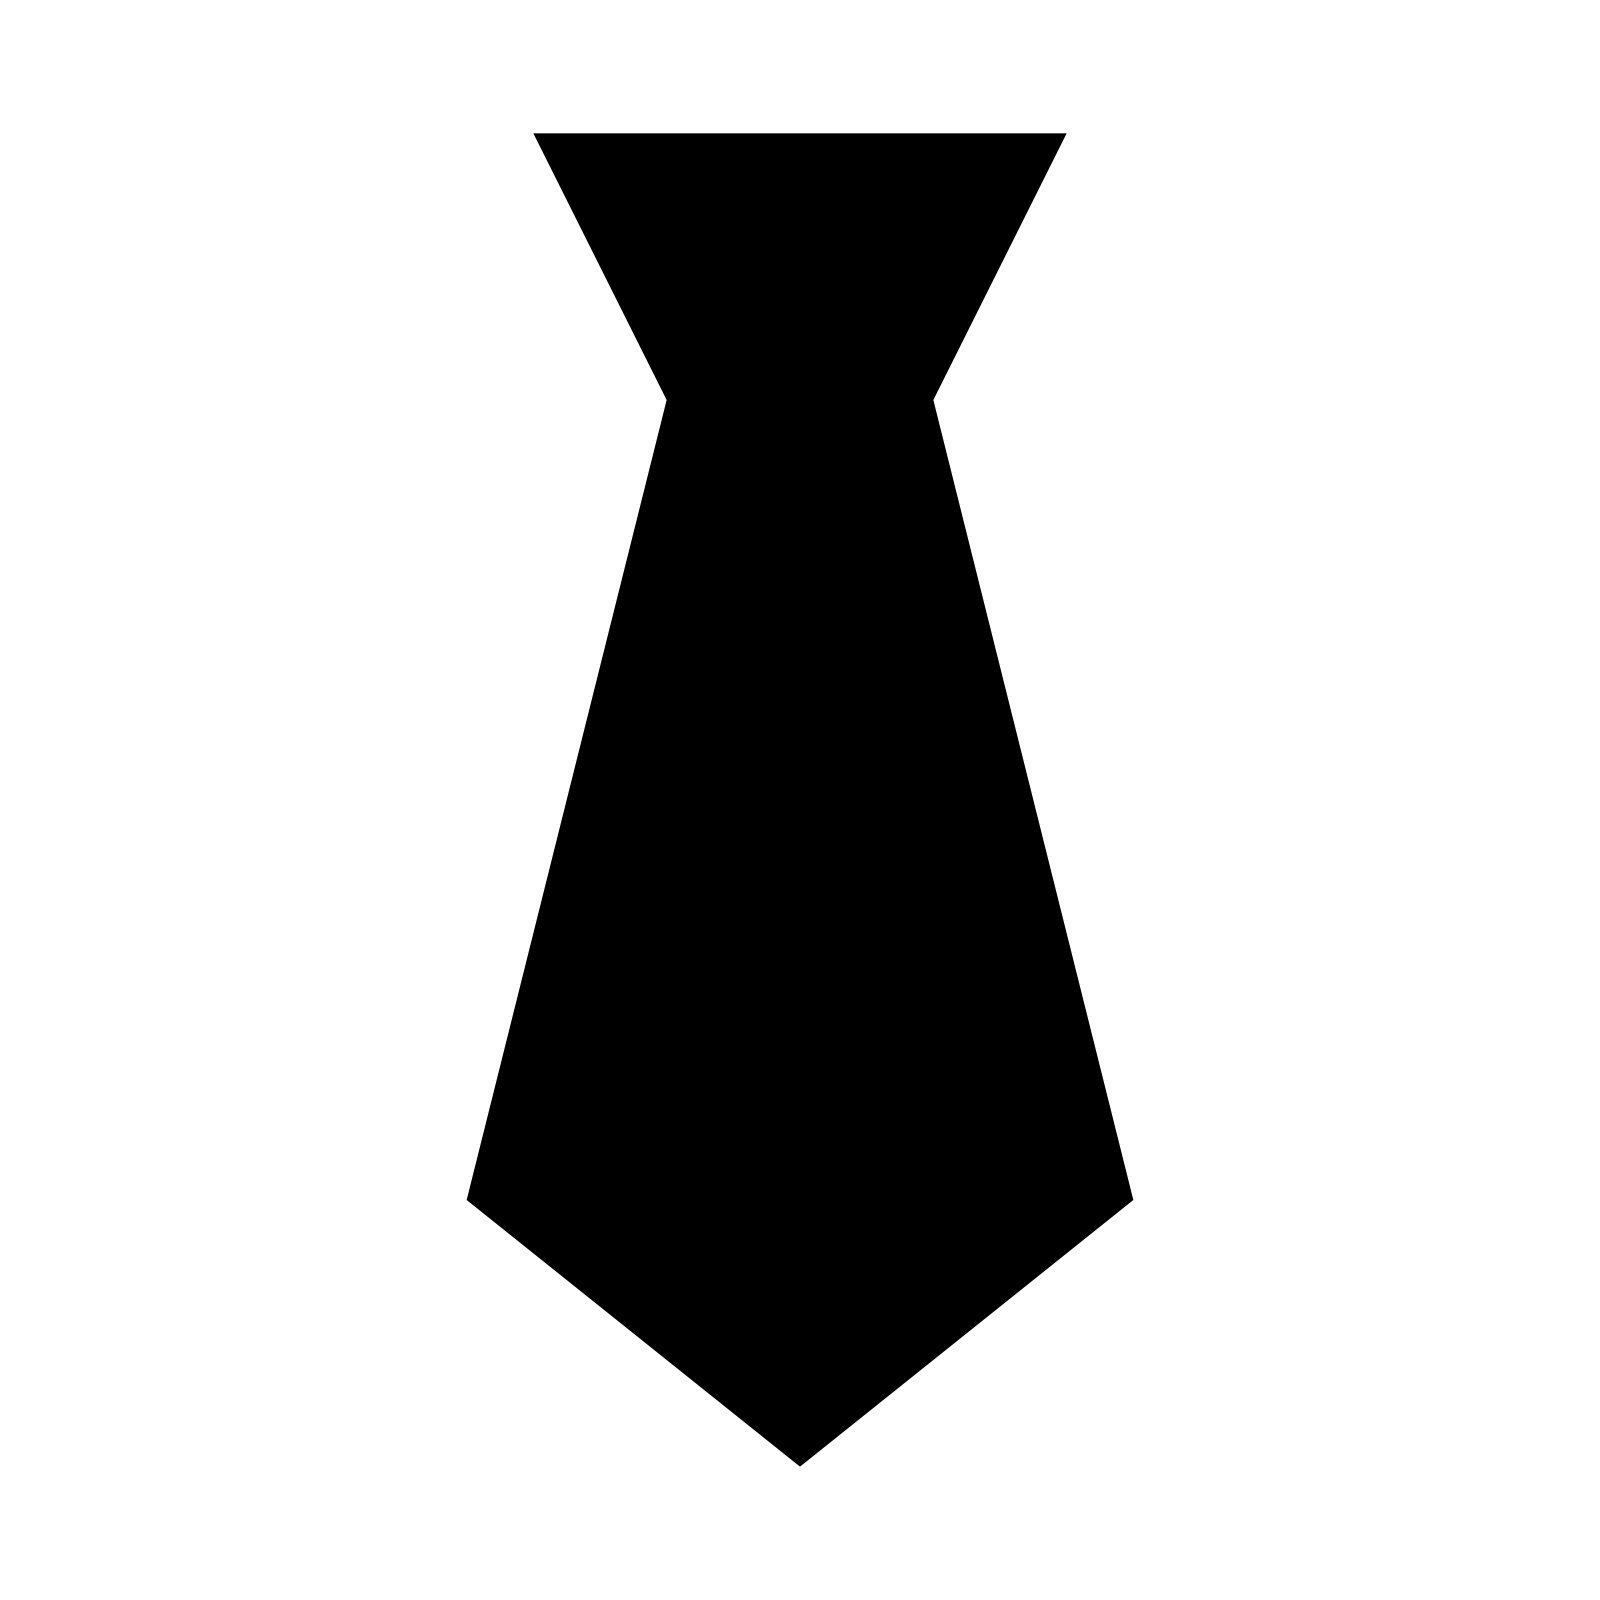 image royalty free Tie clipart. Silhouette free on dumielauxepices